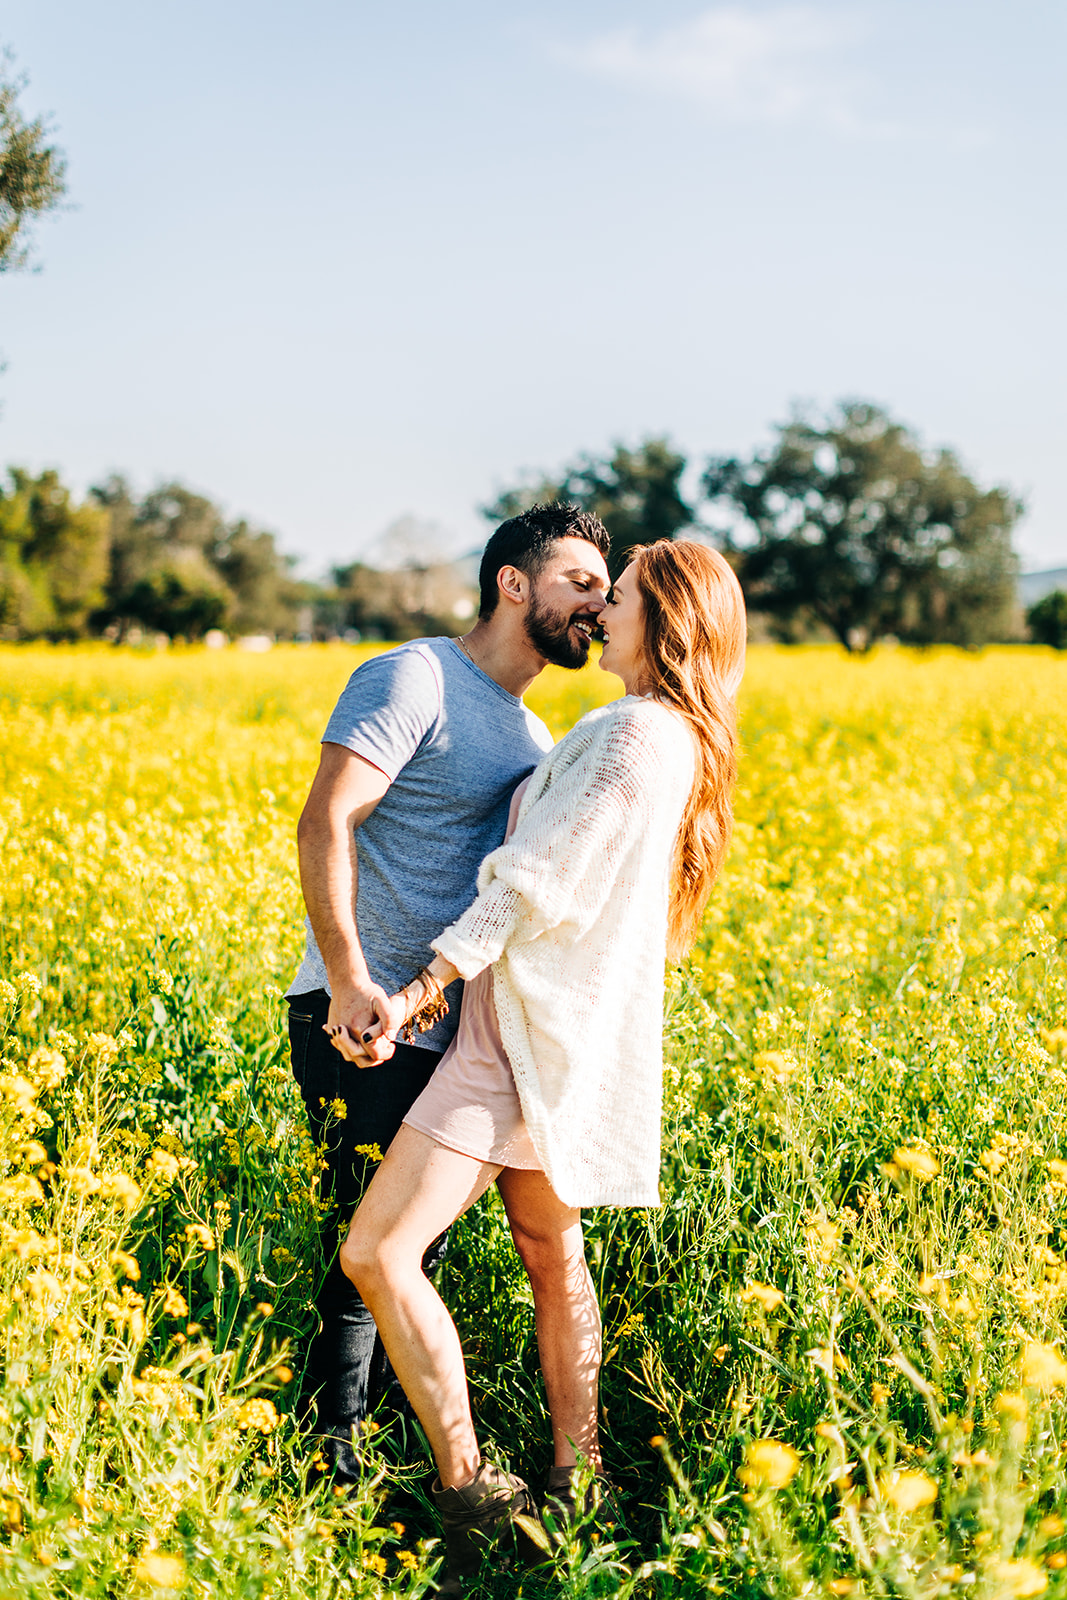 Katie-Yovin_Richard_Superbloom-Engagement-Photos_Clarisse-Rae_Southern-California-Wedding-Photographer-Orange-County-Engagement-Photos-5